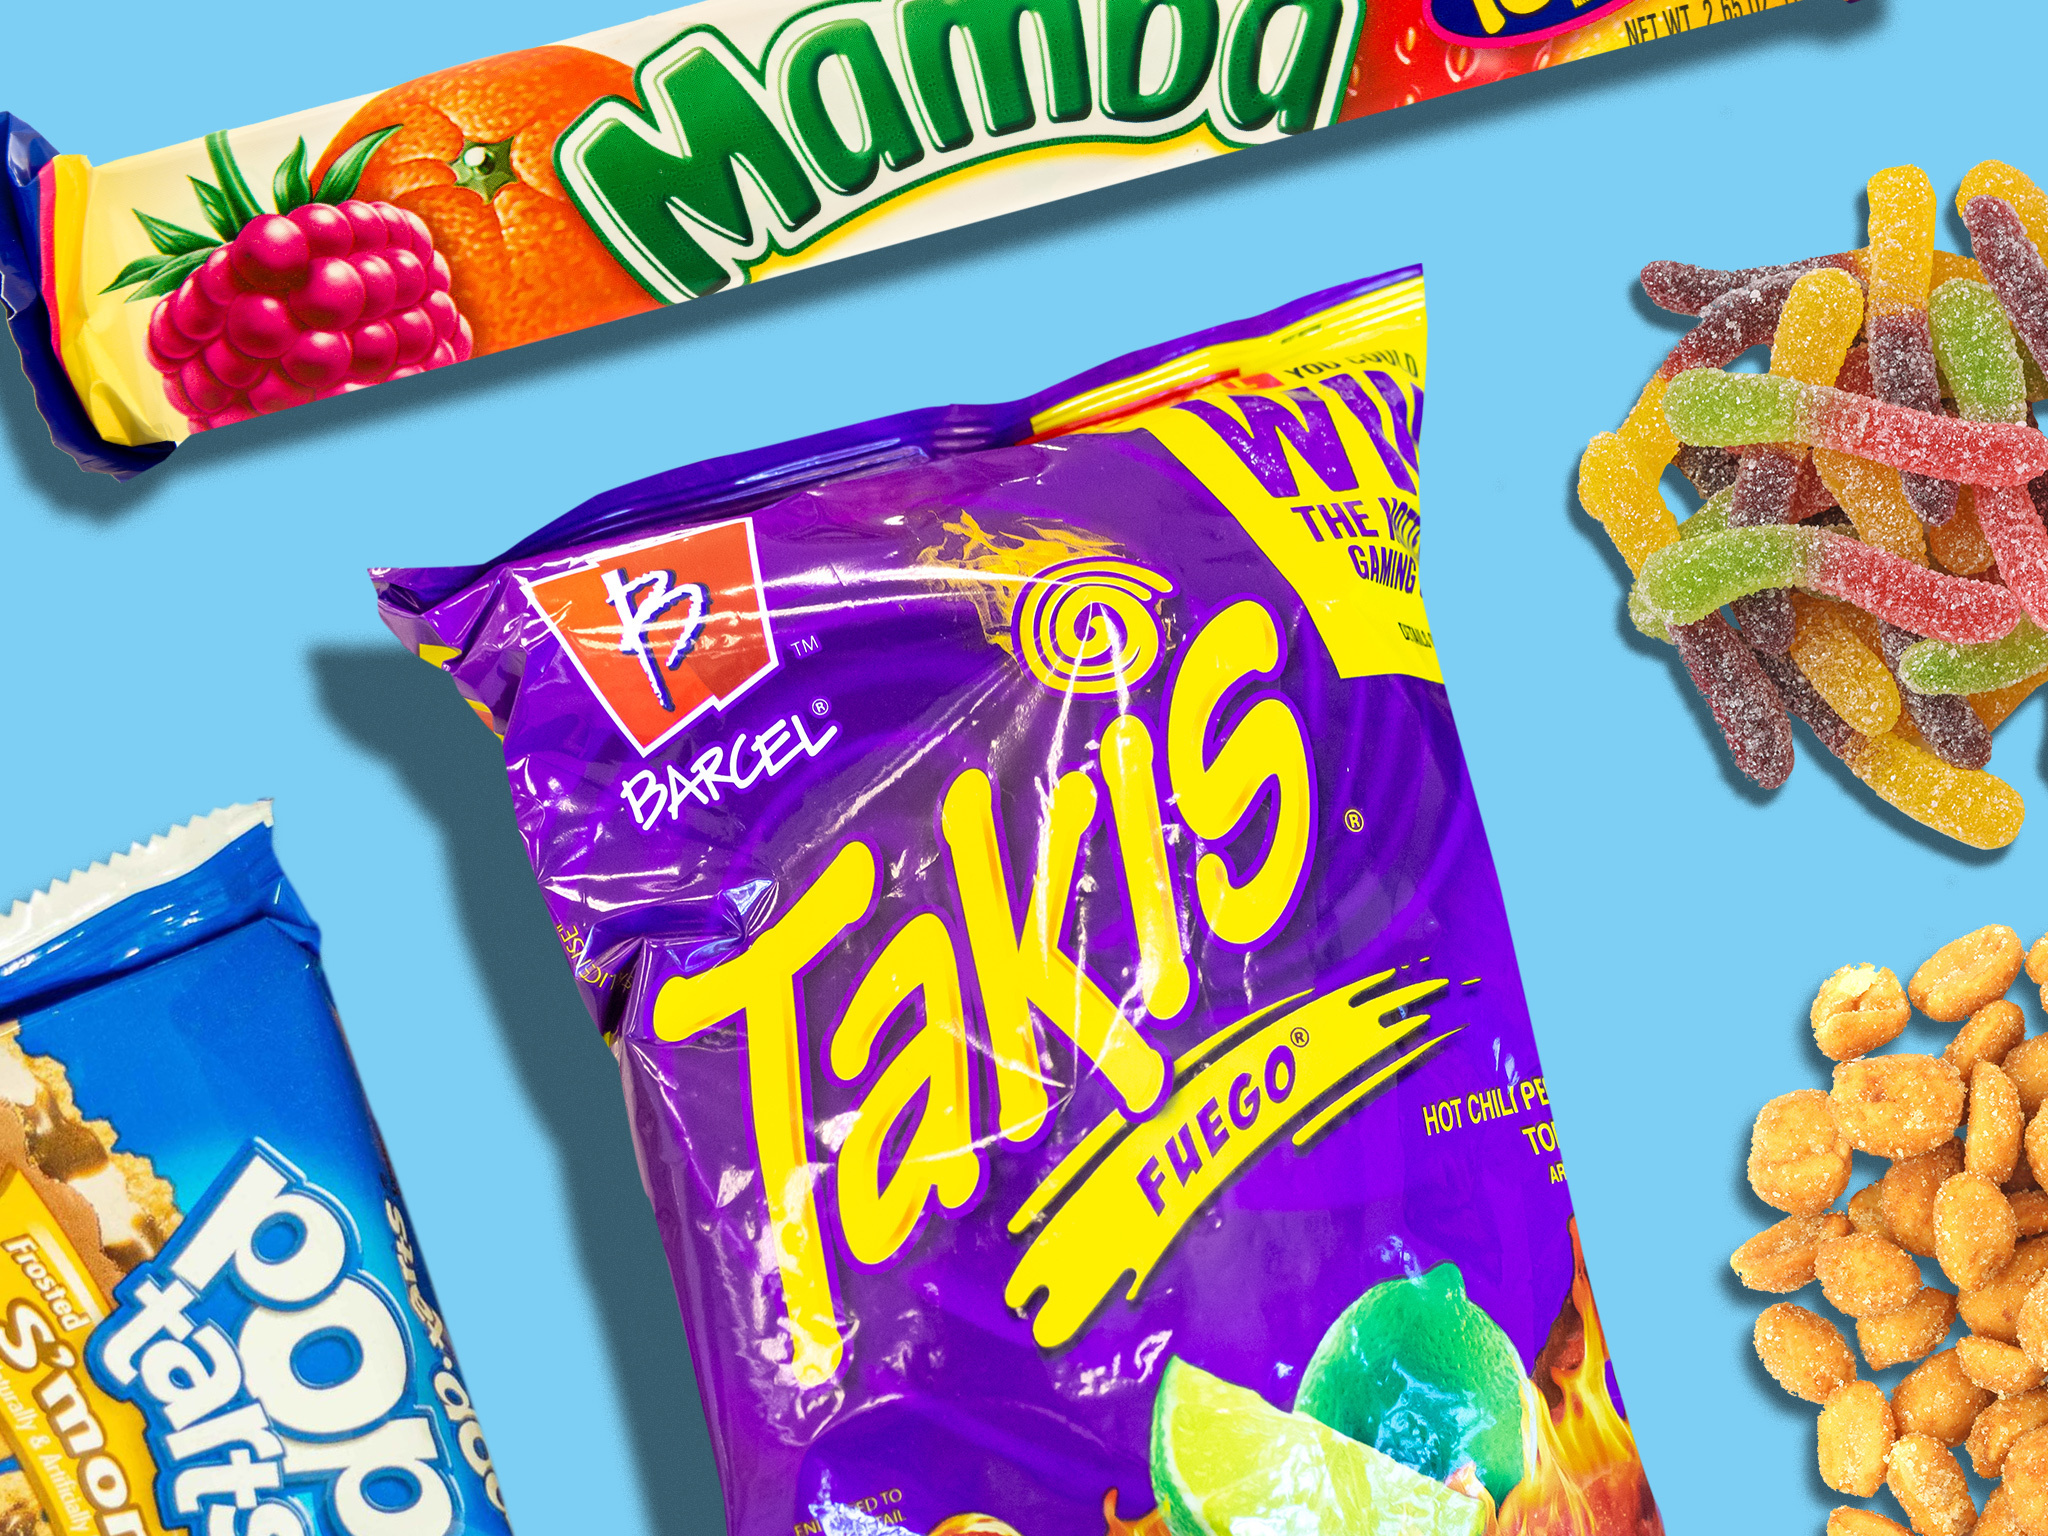 The 17 best gas station snacks, ranked